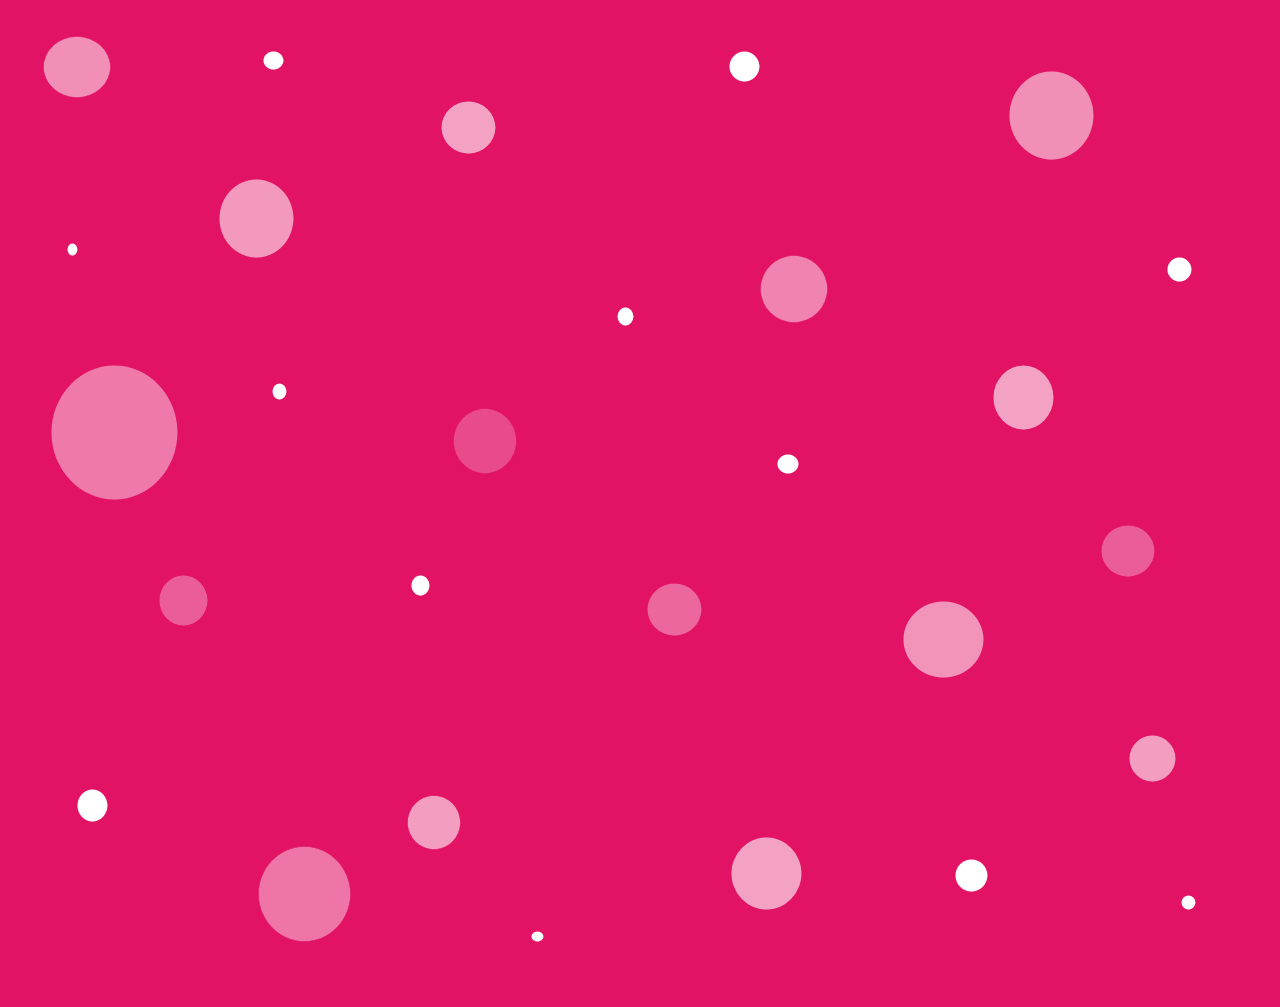 Pink backgrounds 5